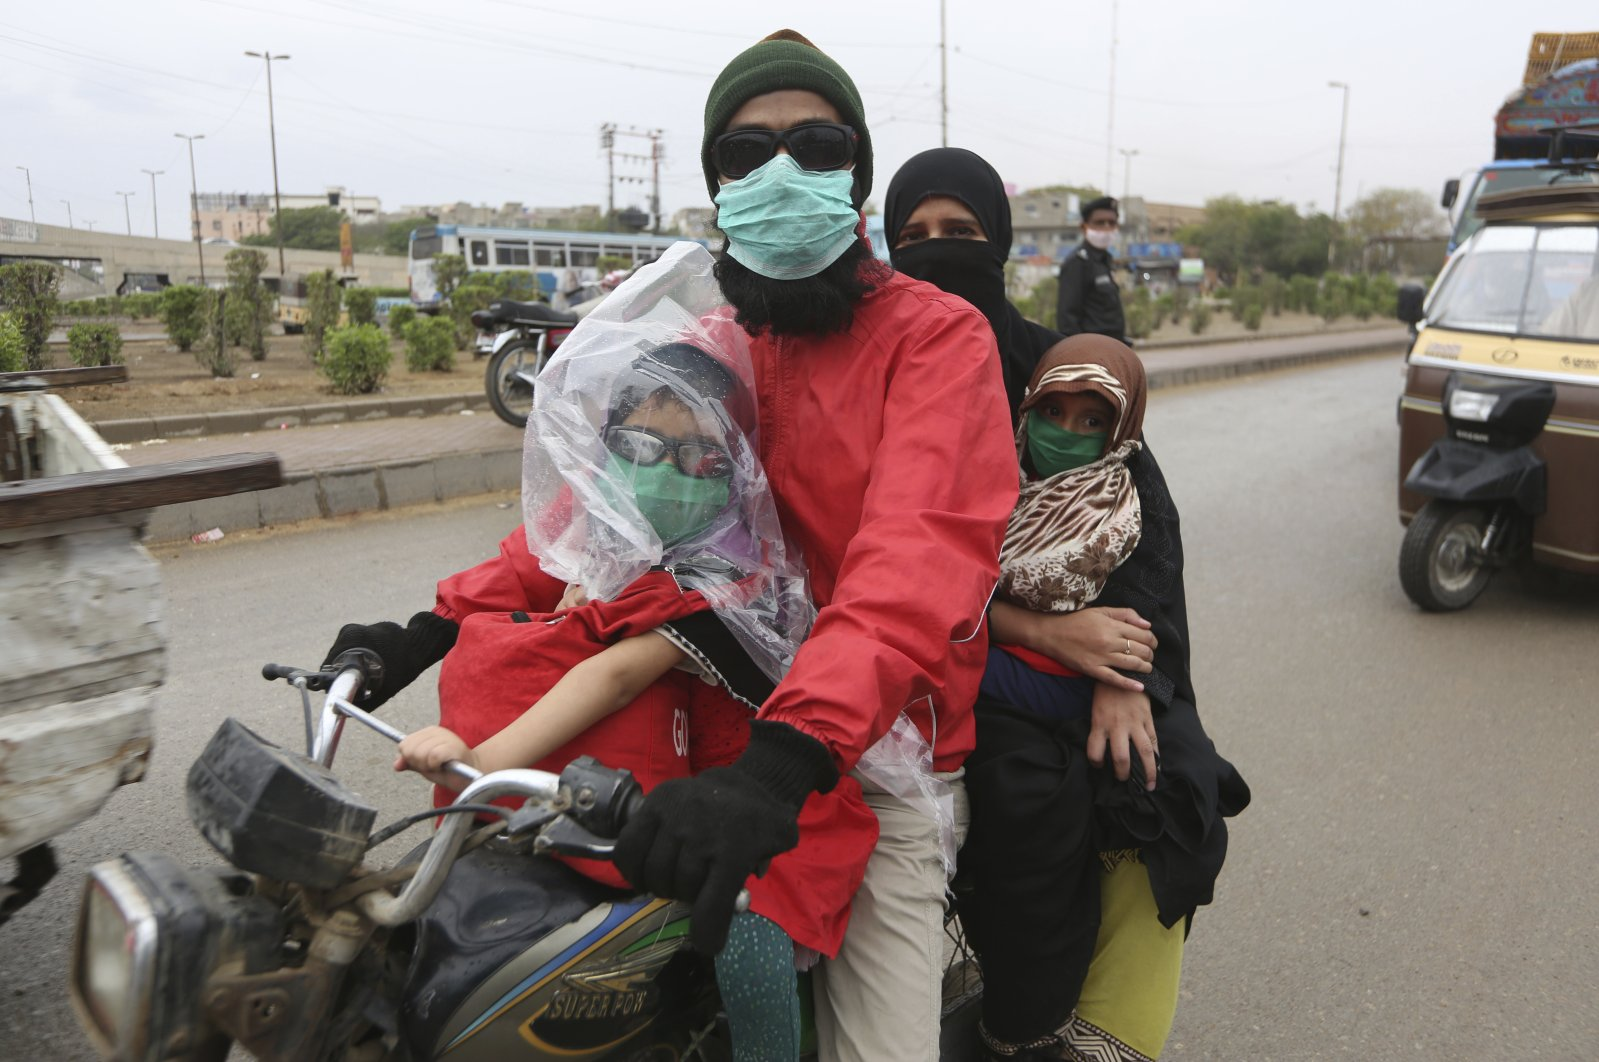 A family travels on a motorcycle wearing face masks during a government-imposed nationwide lockdown, as a preventive measure to contain the coronavirus, in Karachi, Pakistan, Thursday, March 26, 2020. (AP Photo)